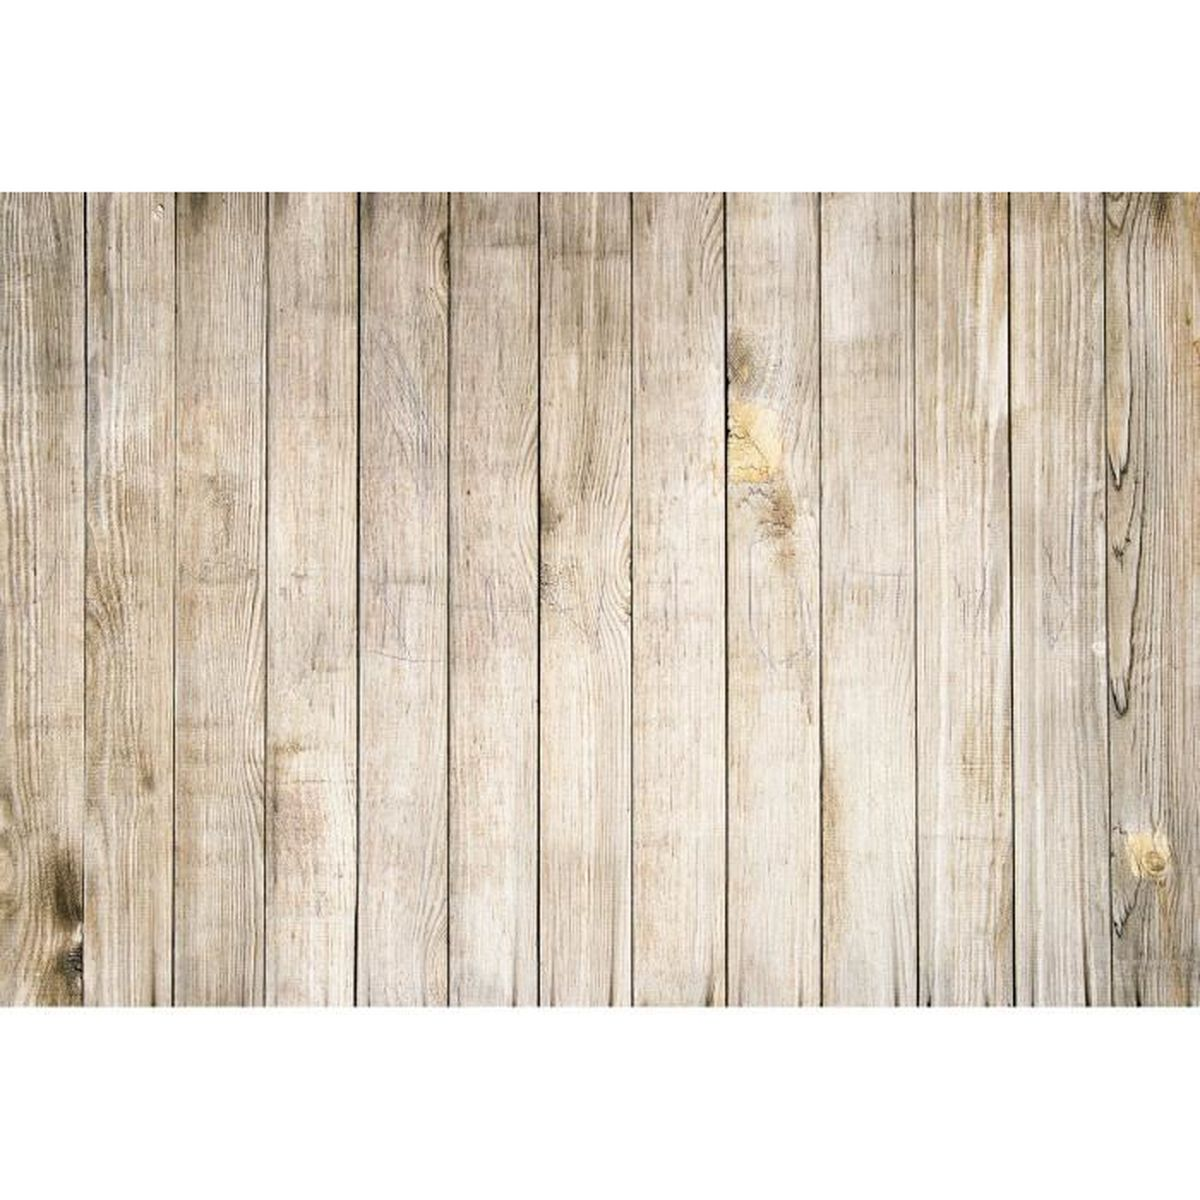 papier peint bois vieilli beige fonc achat vente papier peint cdiscount. Black Bedroom Furniture Sets. Home Design Ideas